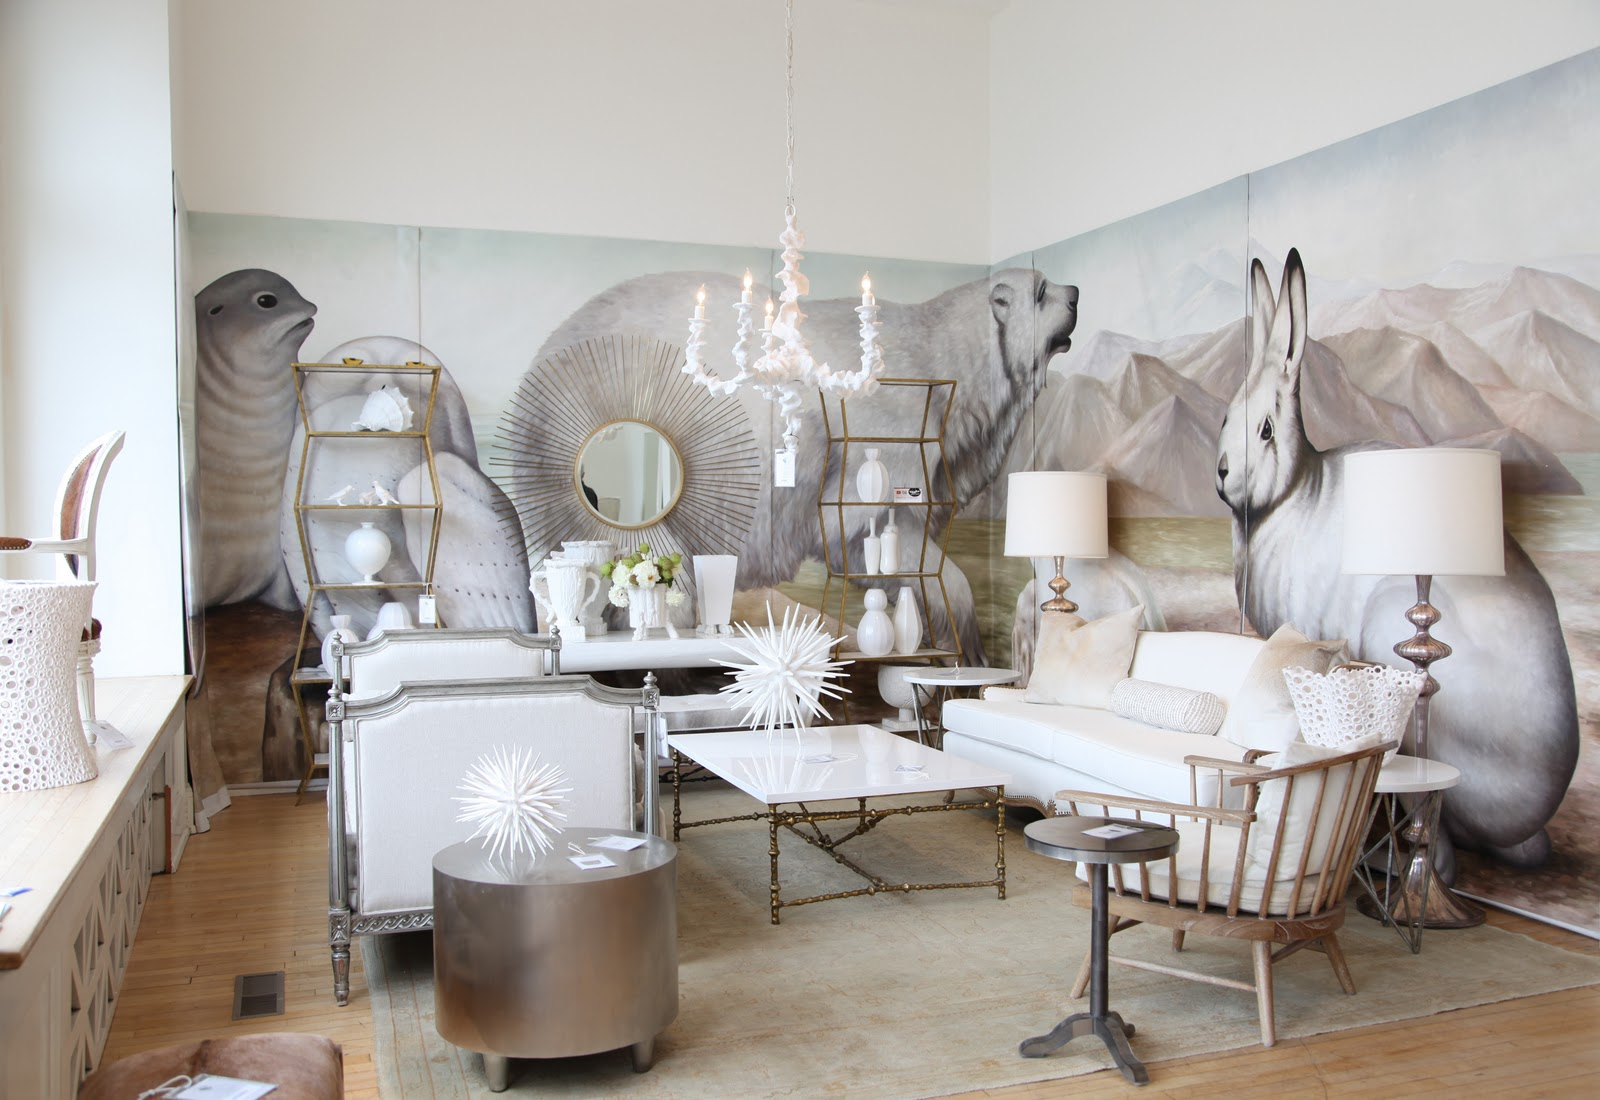 {Photo From Habitually Chic; Oly Studio, Fall High Point Furniture Market  2011}